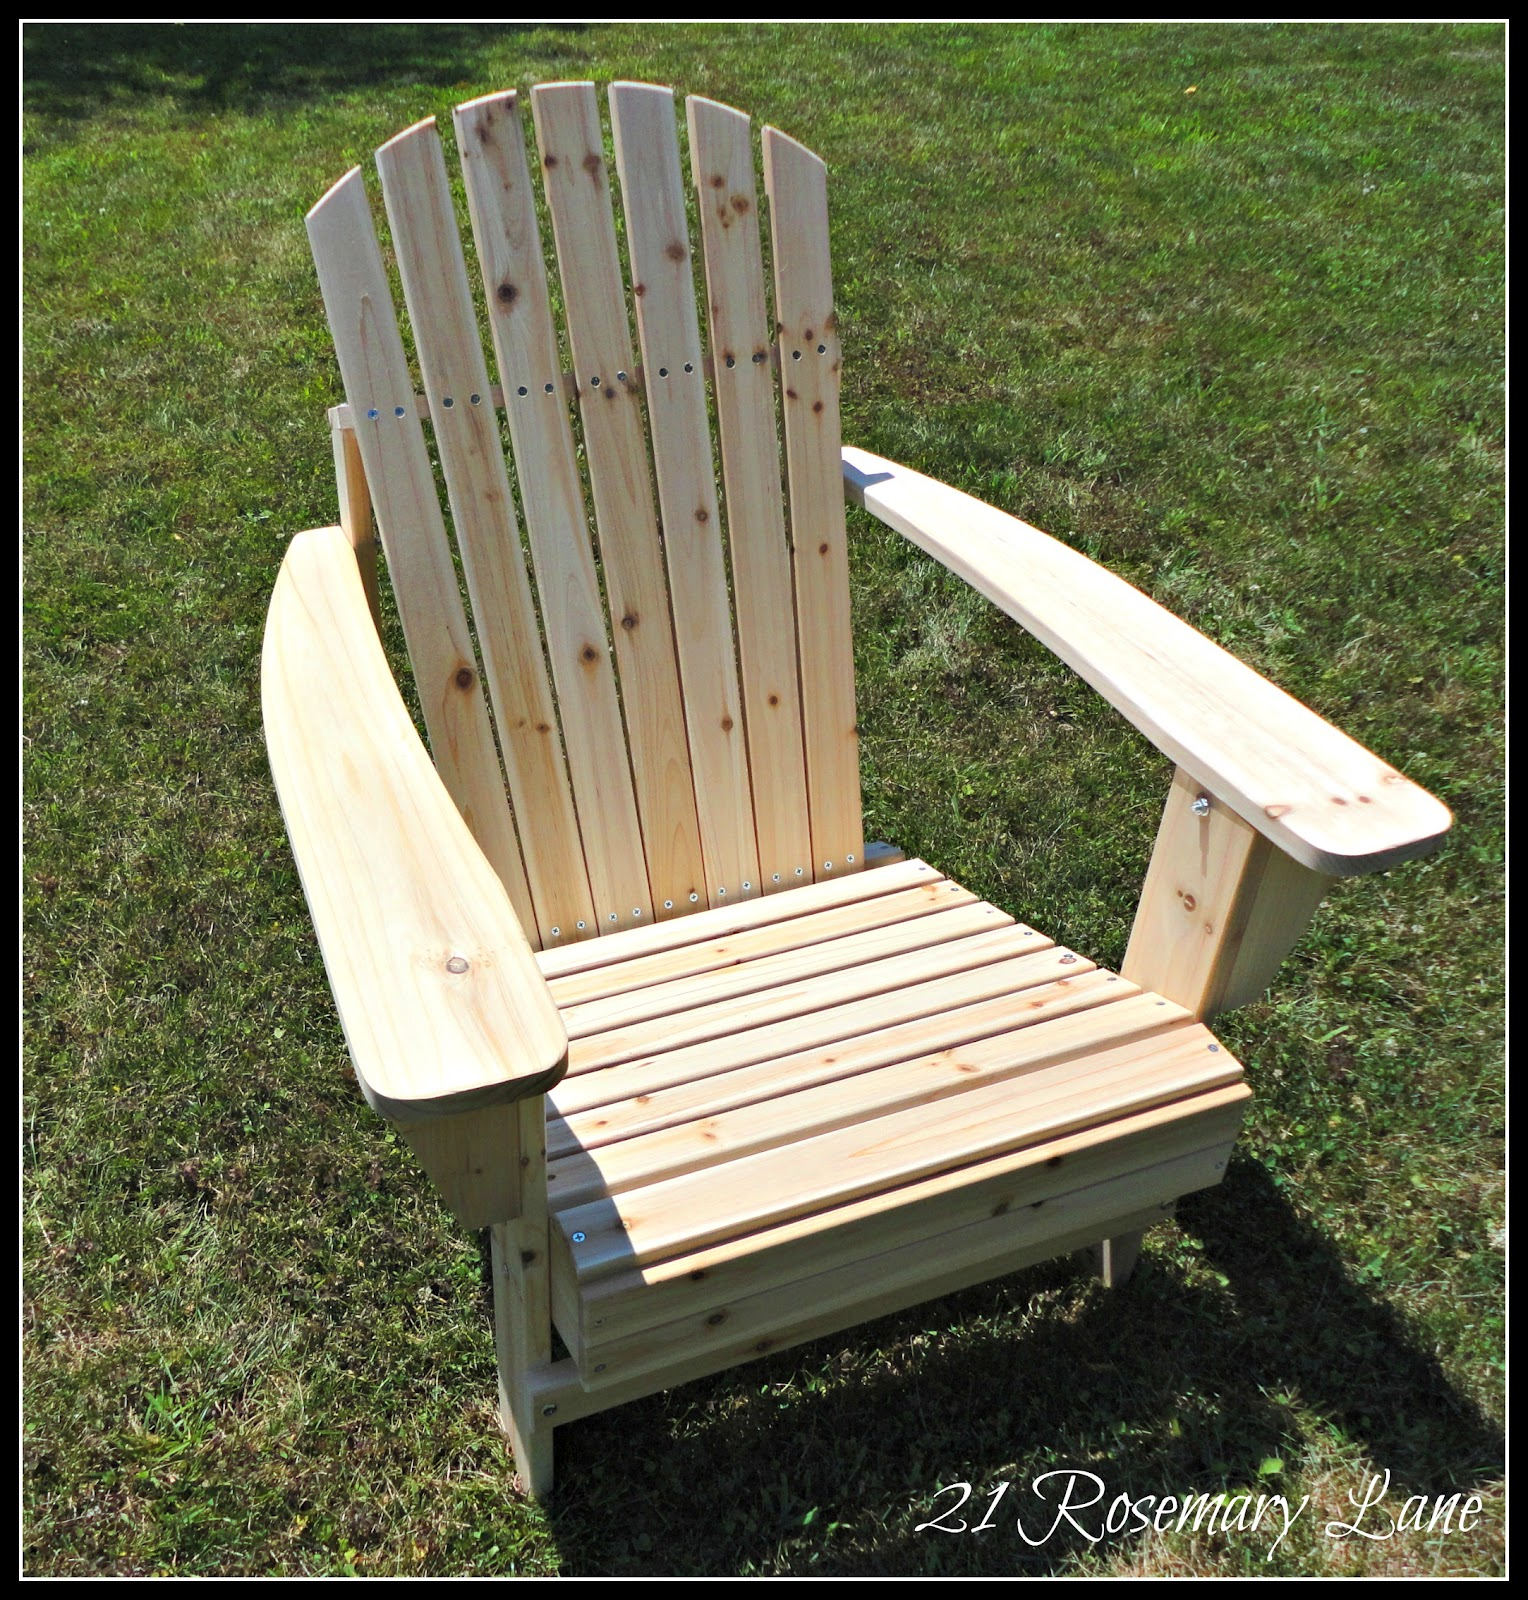 Paint For Adirondack Chairs Glider Chair Covers Uk 21 Rosemary Lane My Freshly Painted